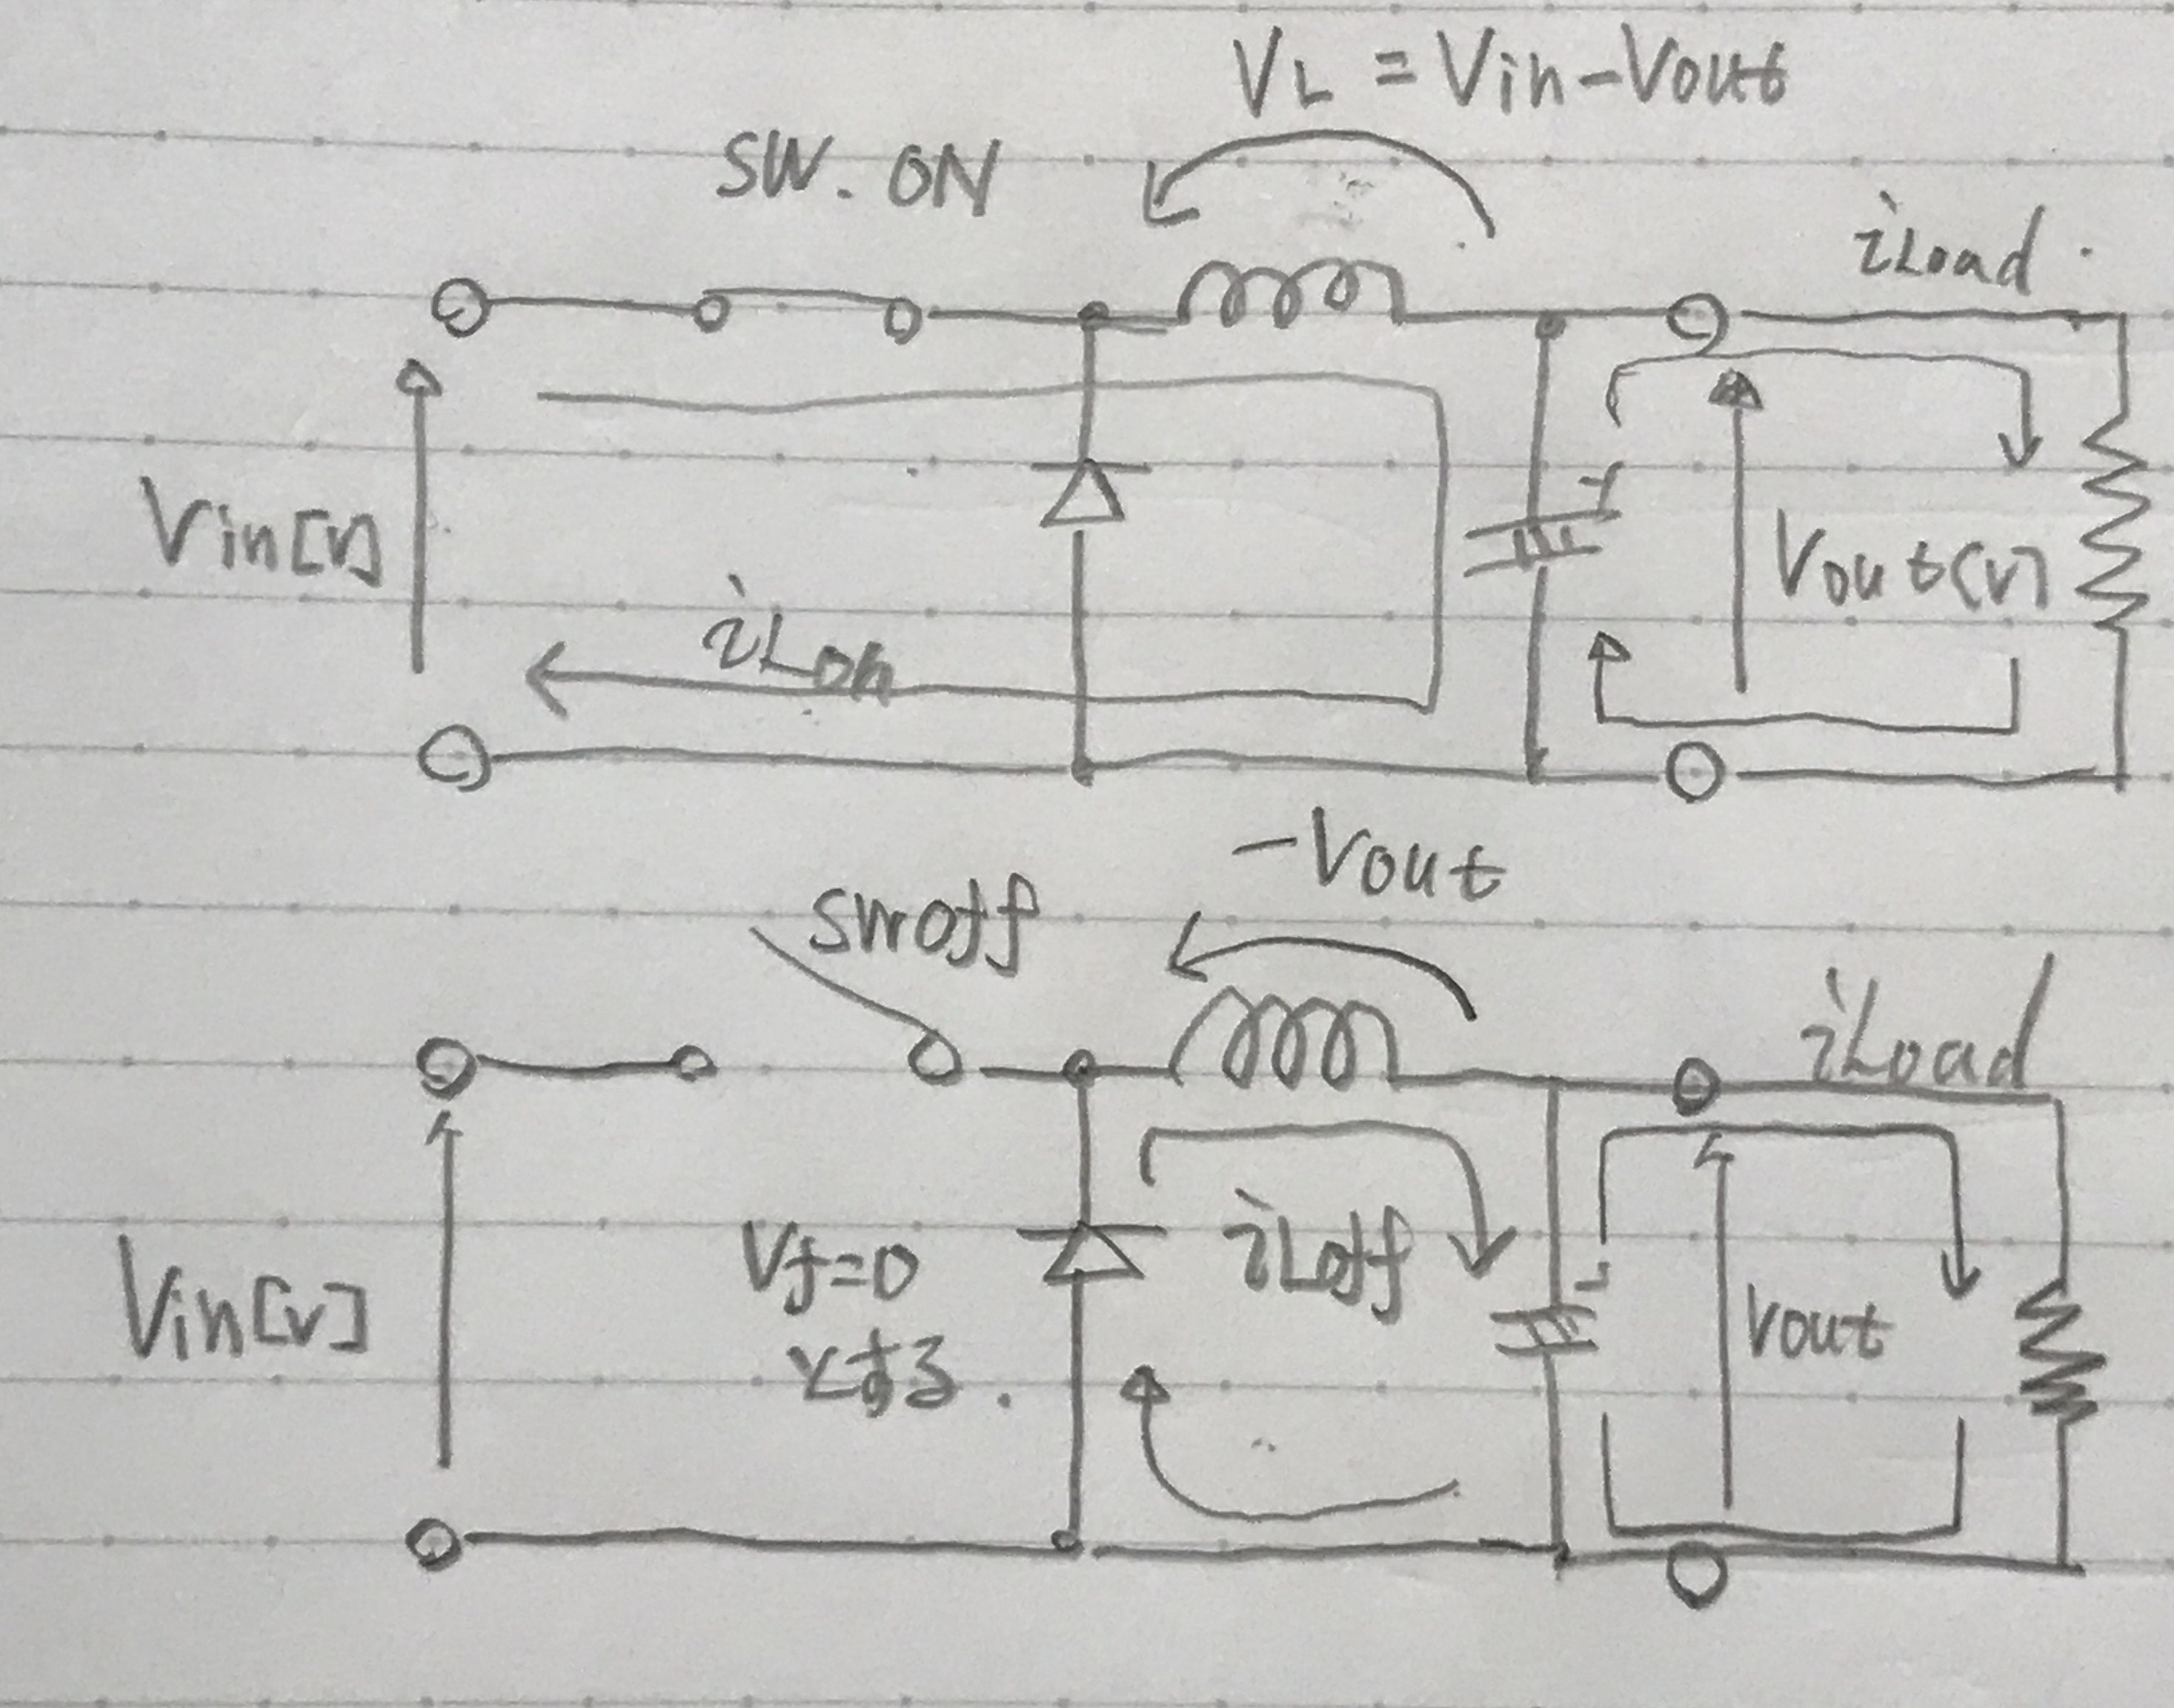 circuit_on_and_off.jpg